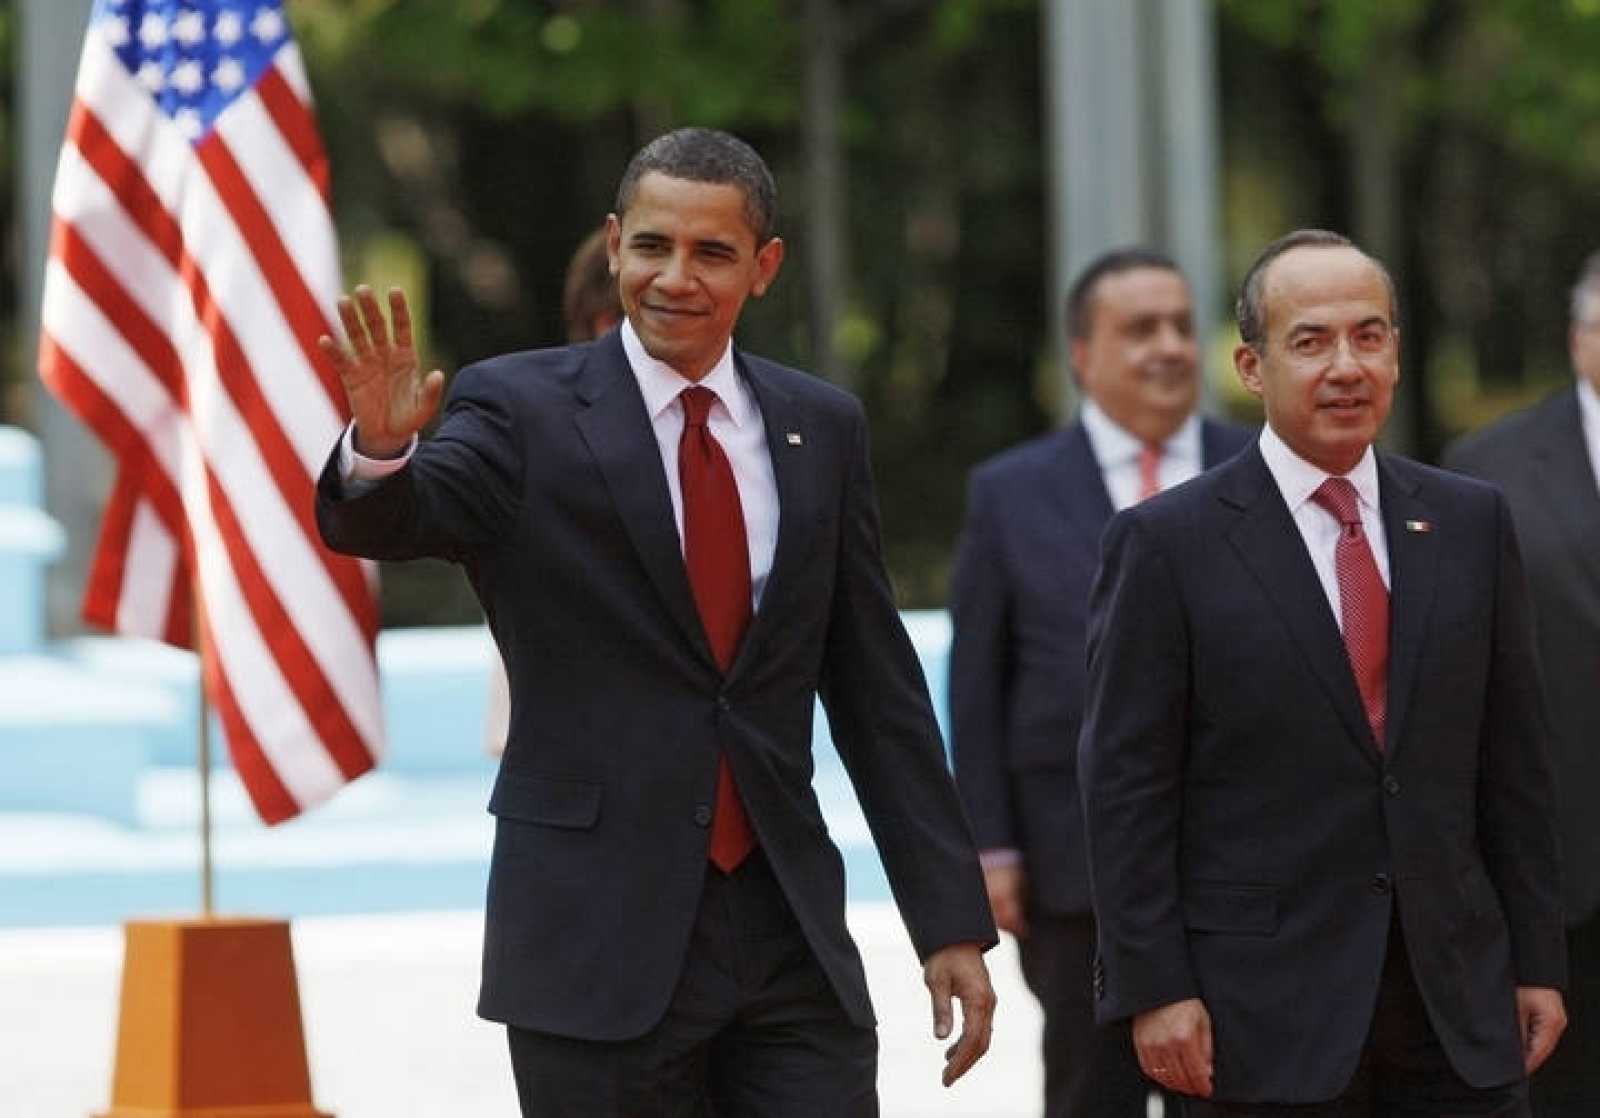 U.S. President Obama waves as he walks with Mexico's President Calderon in Mexico City